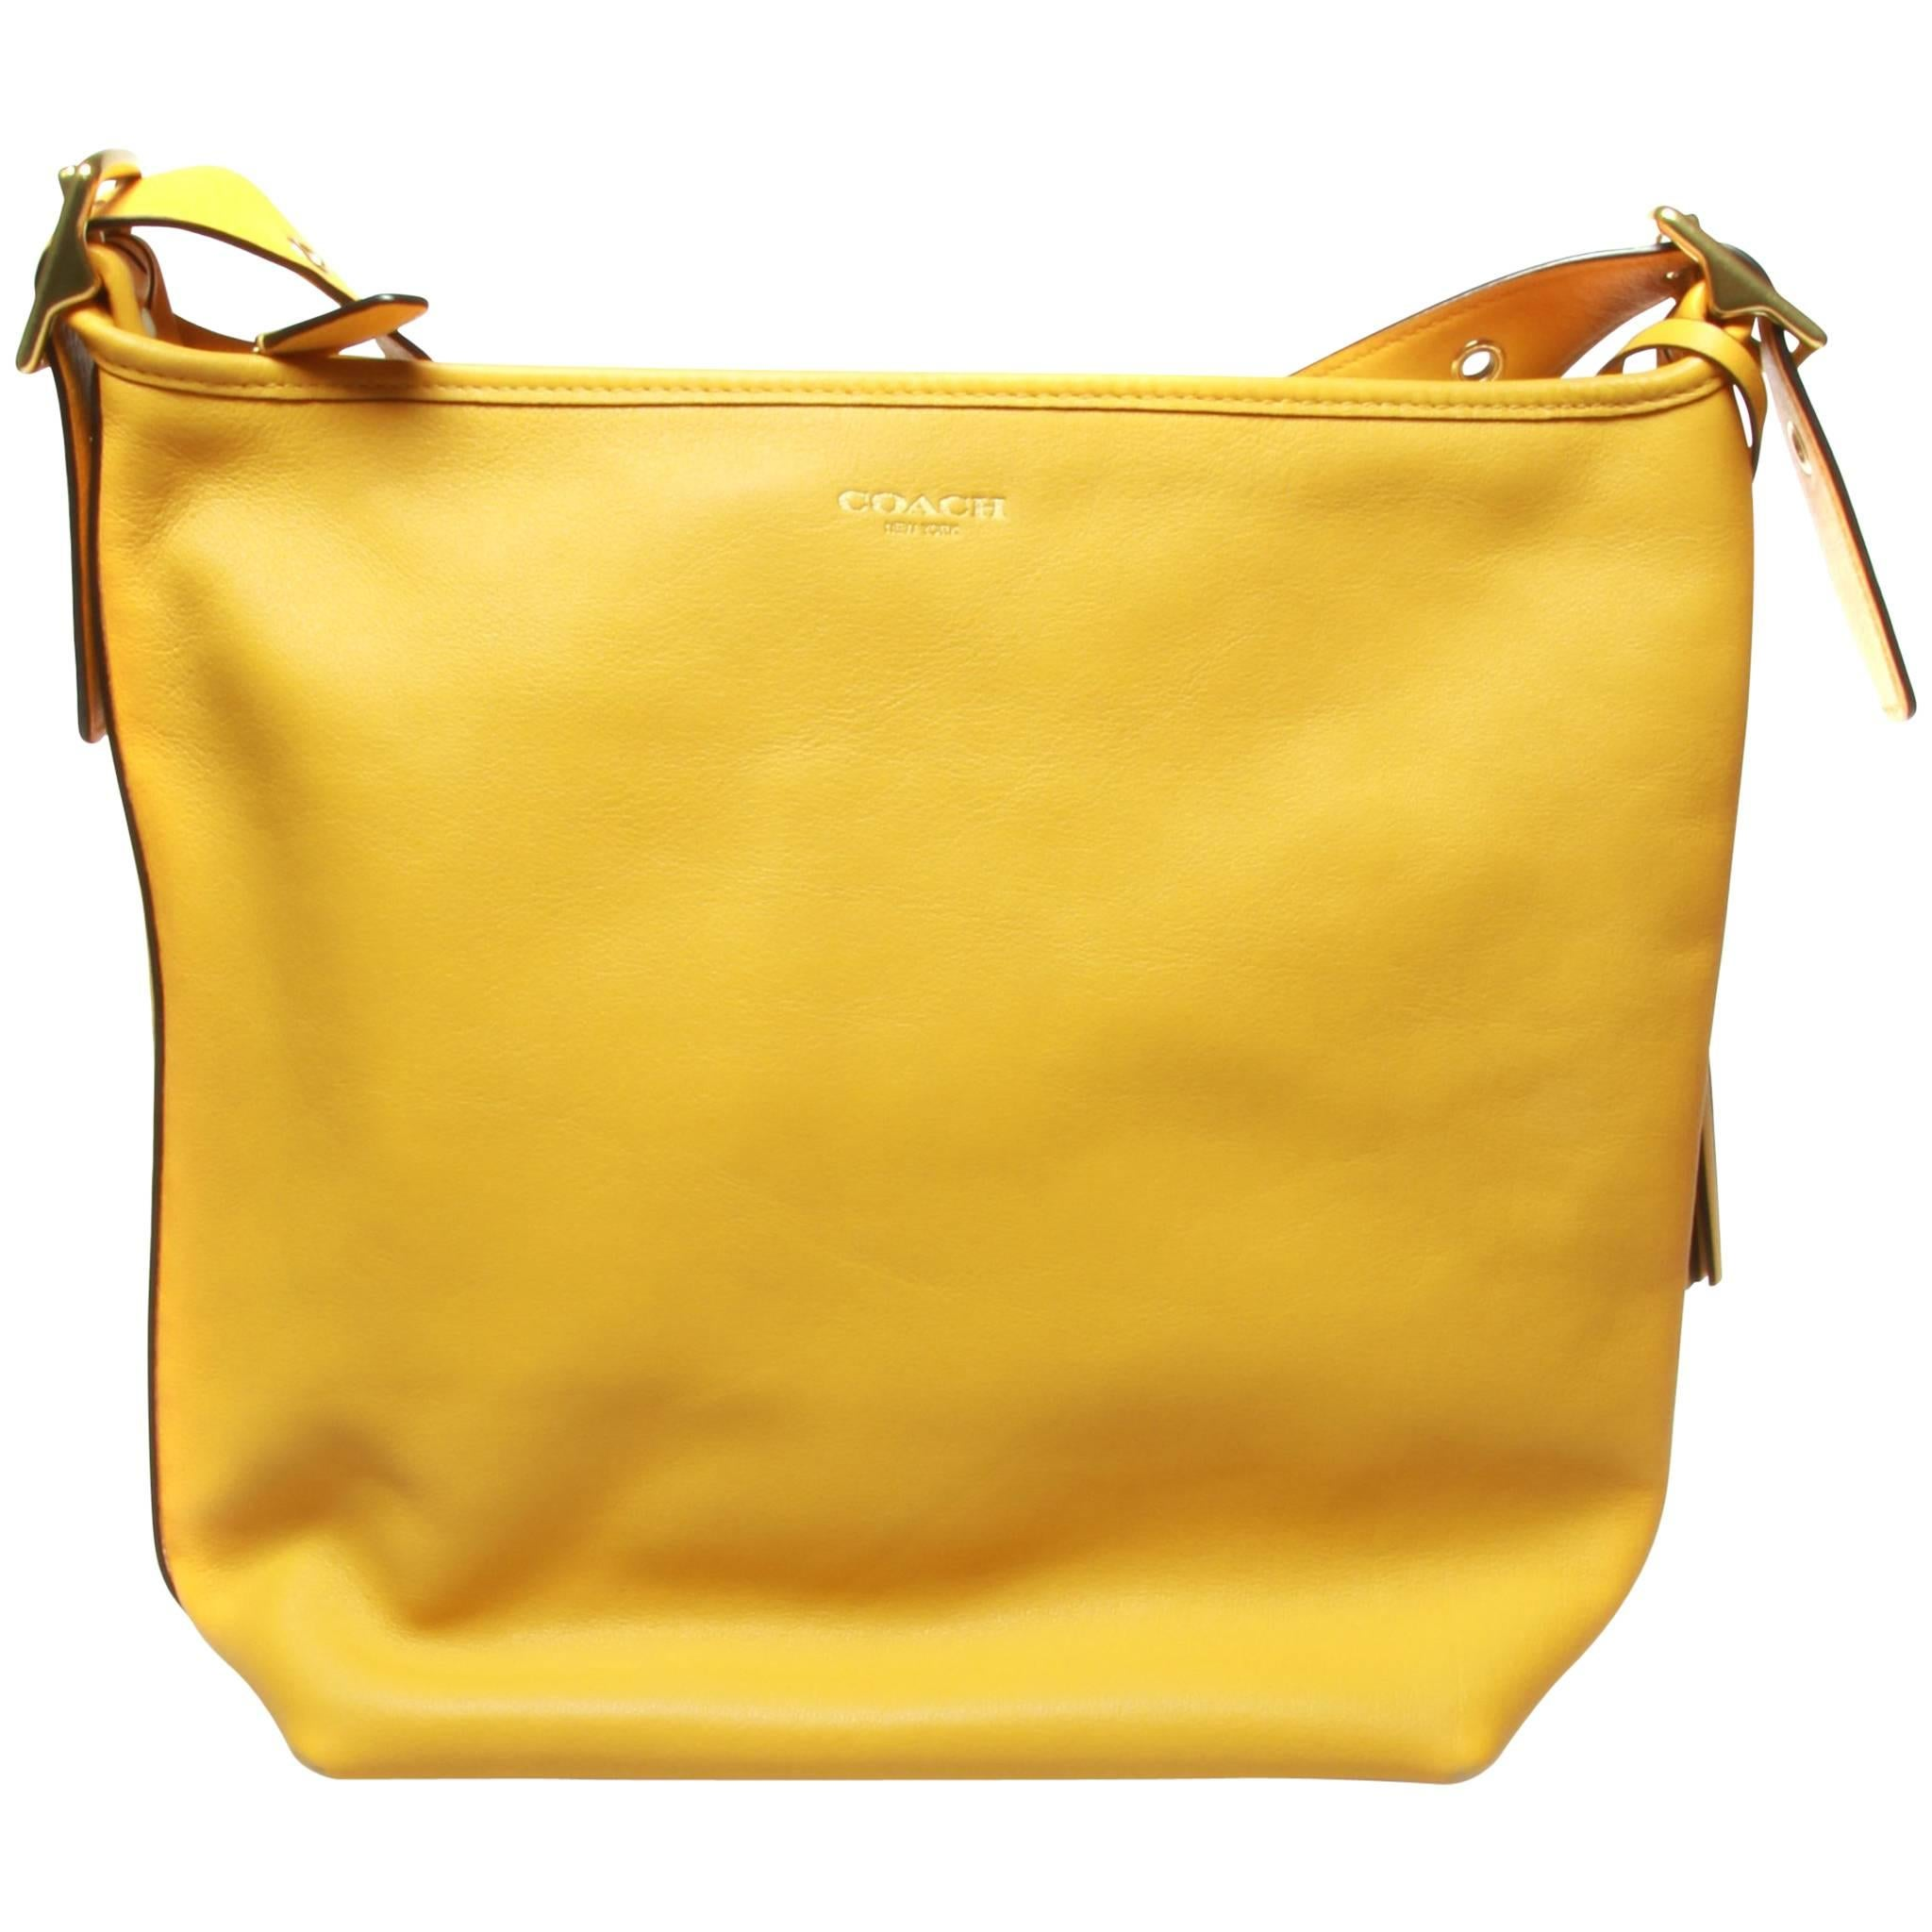 ... buy coach large ladies yellow handbag duffle crossbody with dust cover  and gold hard for sale 2e39151f0ab5c